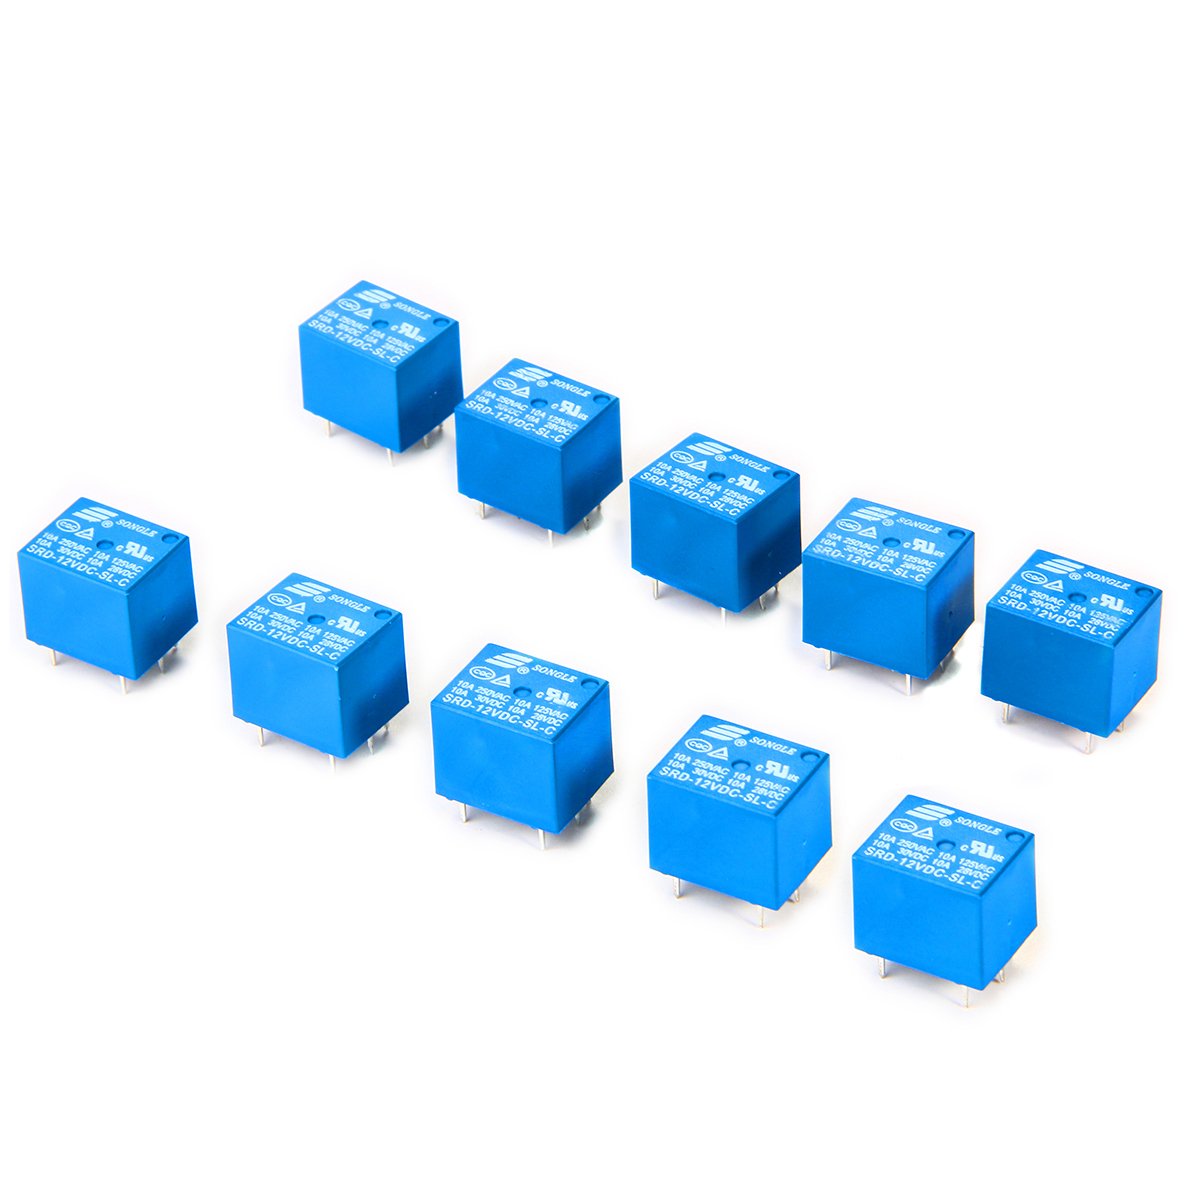 Songle 10pcs 12v Mini Electromagnetic Power Relay Spdt 10a Pcb Mount 5 Pins Household Appliances